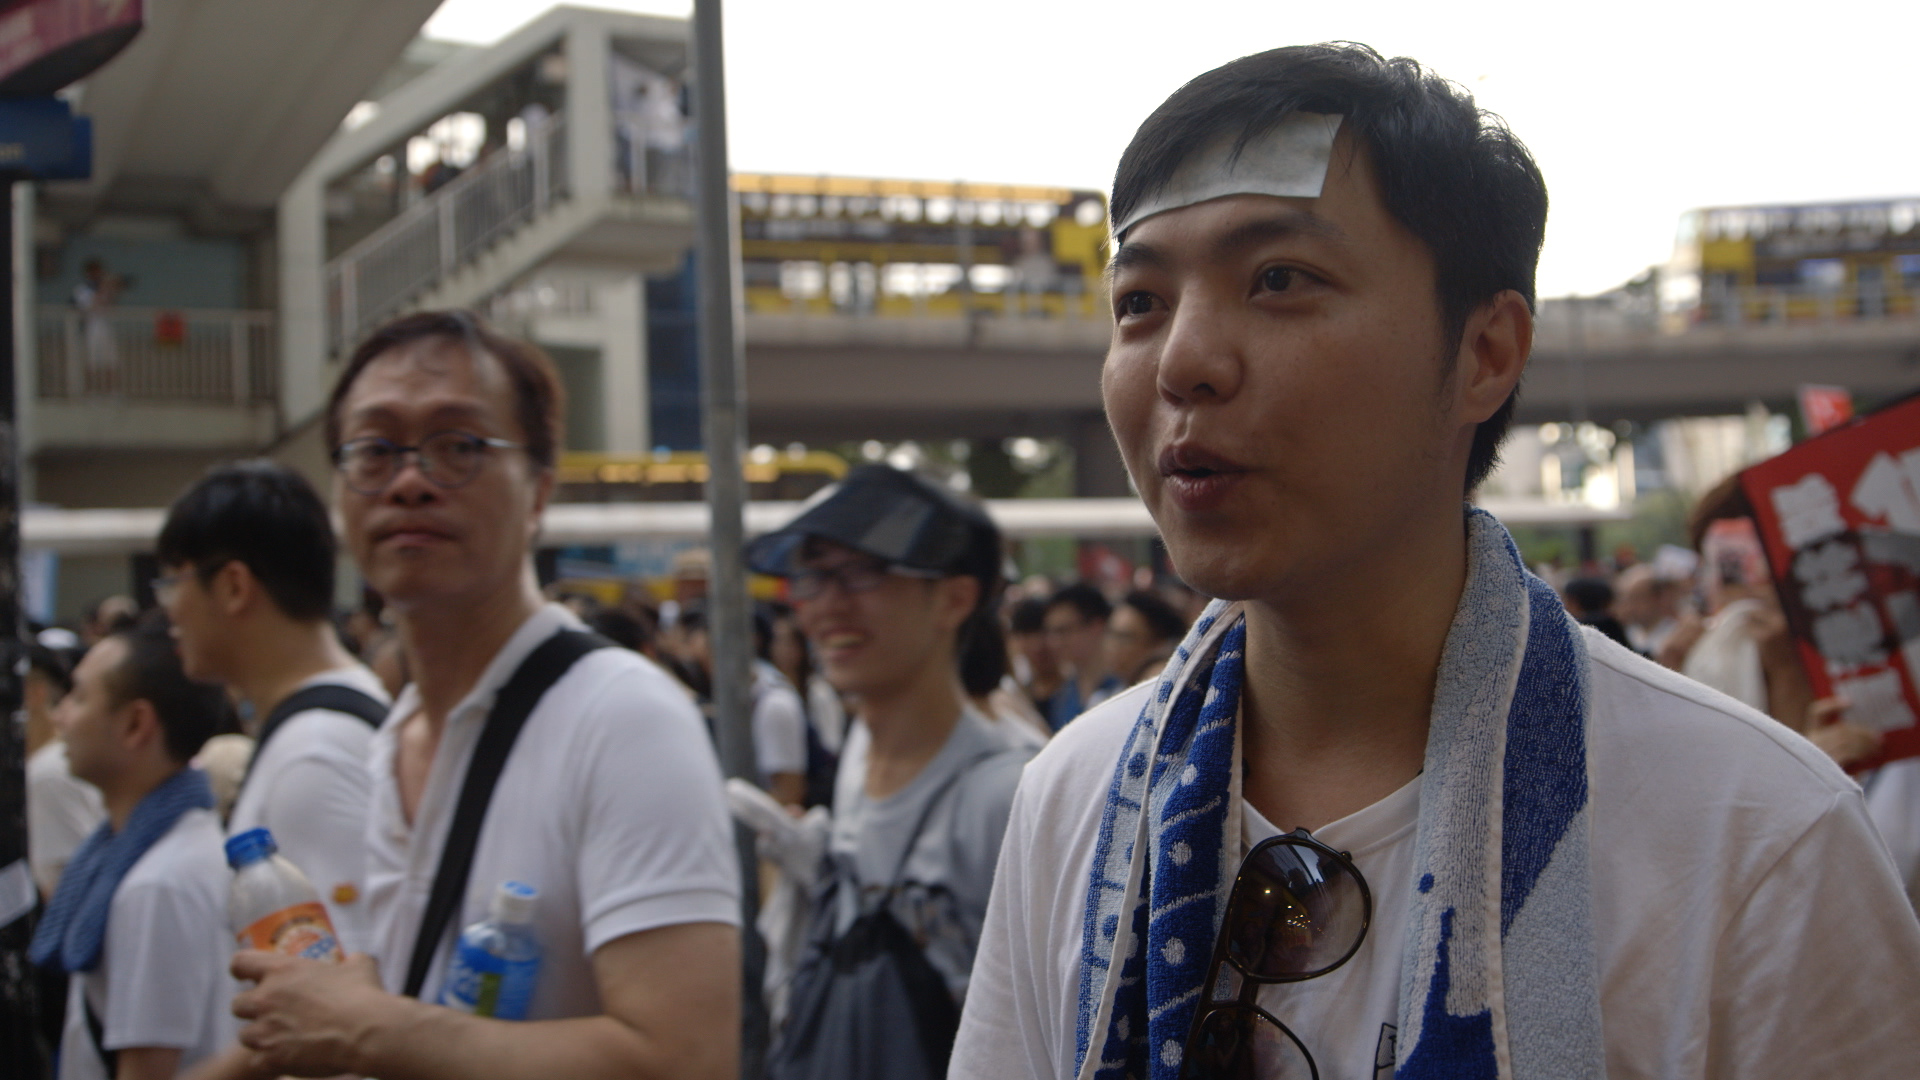 Hong Kong Stabbing: Attacker Allegedly Asked Victims About Their Views On Protests Before Brutal Assault